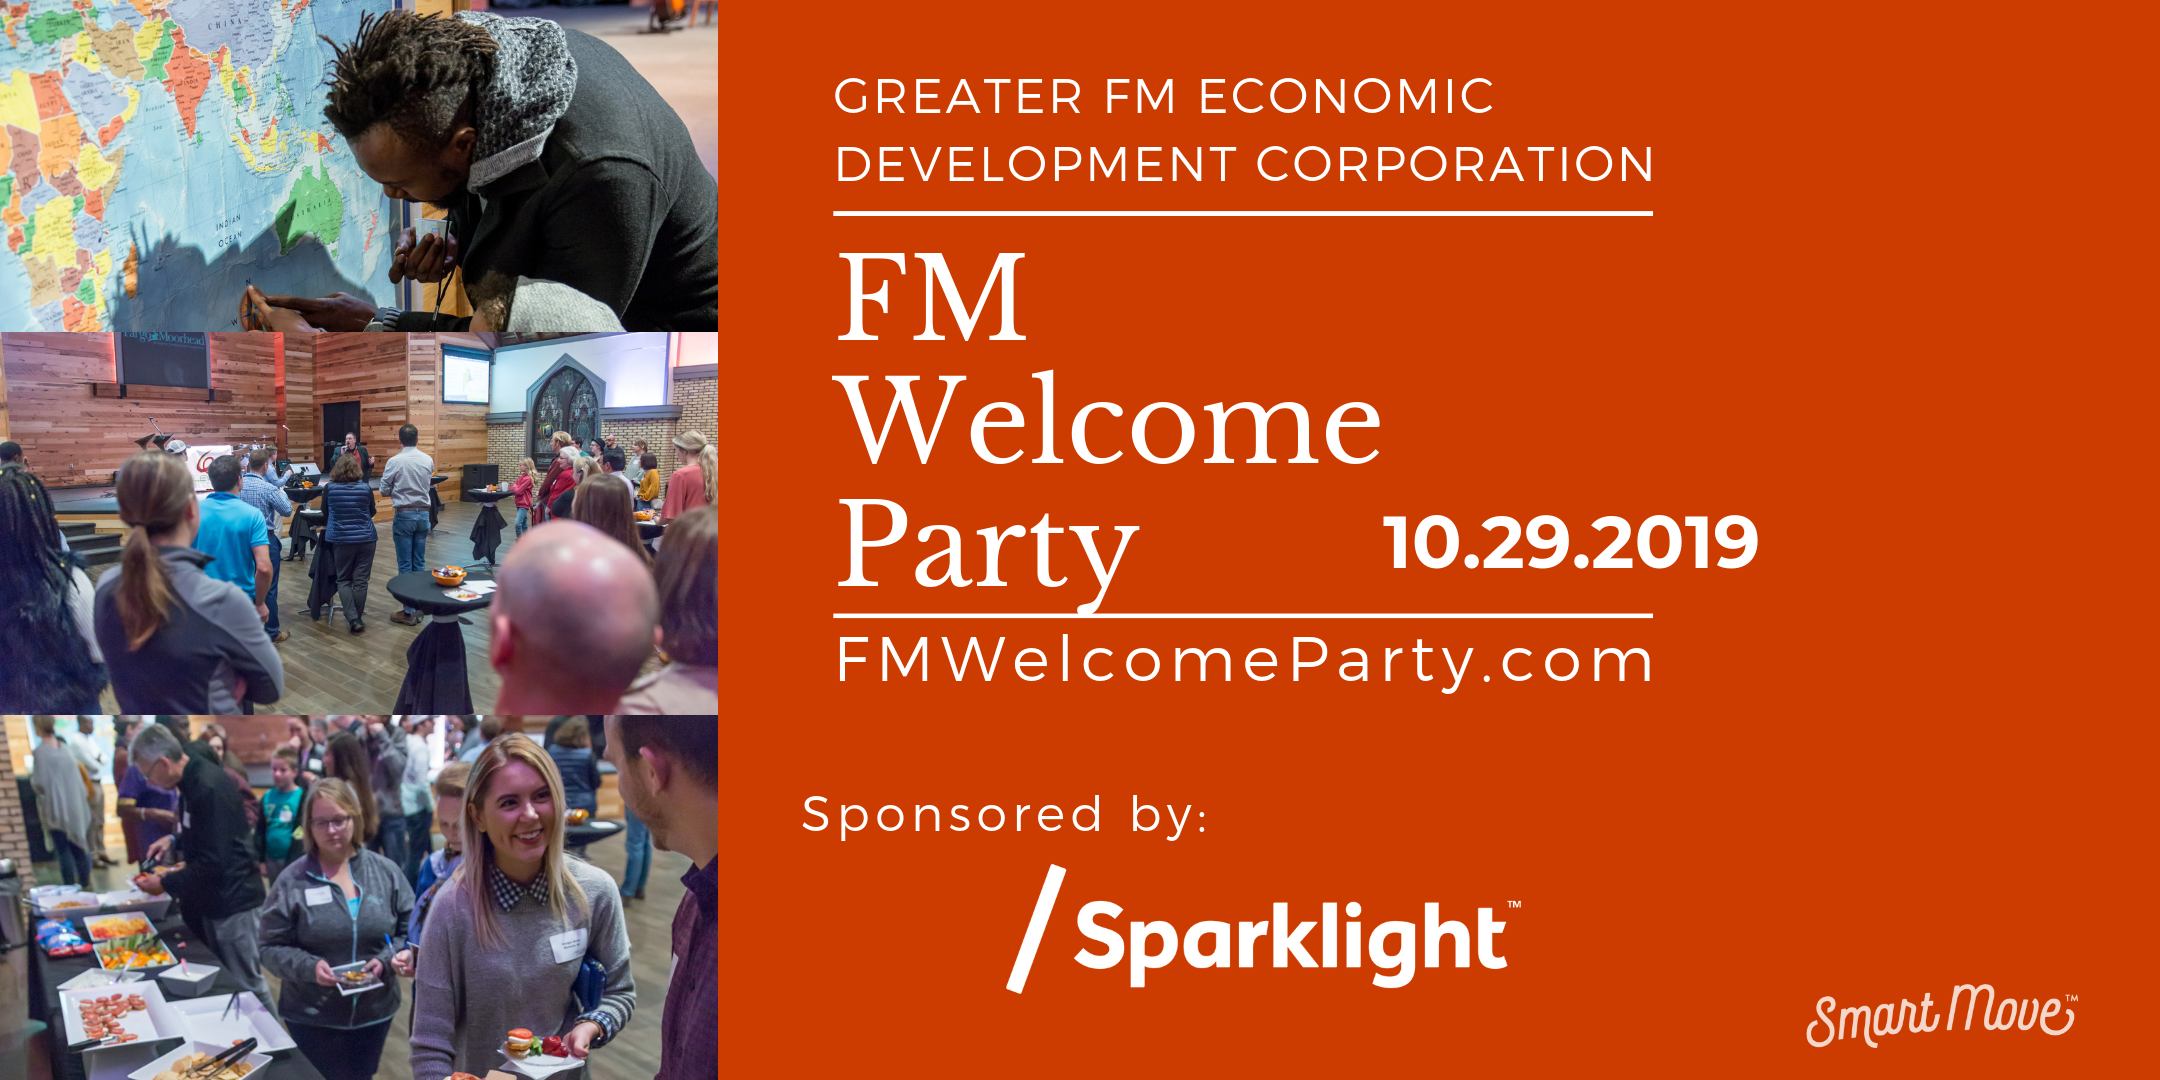 FM Welcome Party ? October 29, 2019